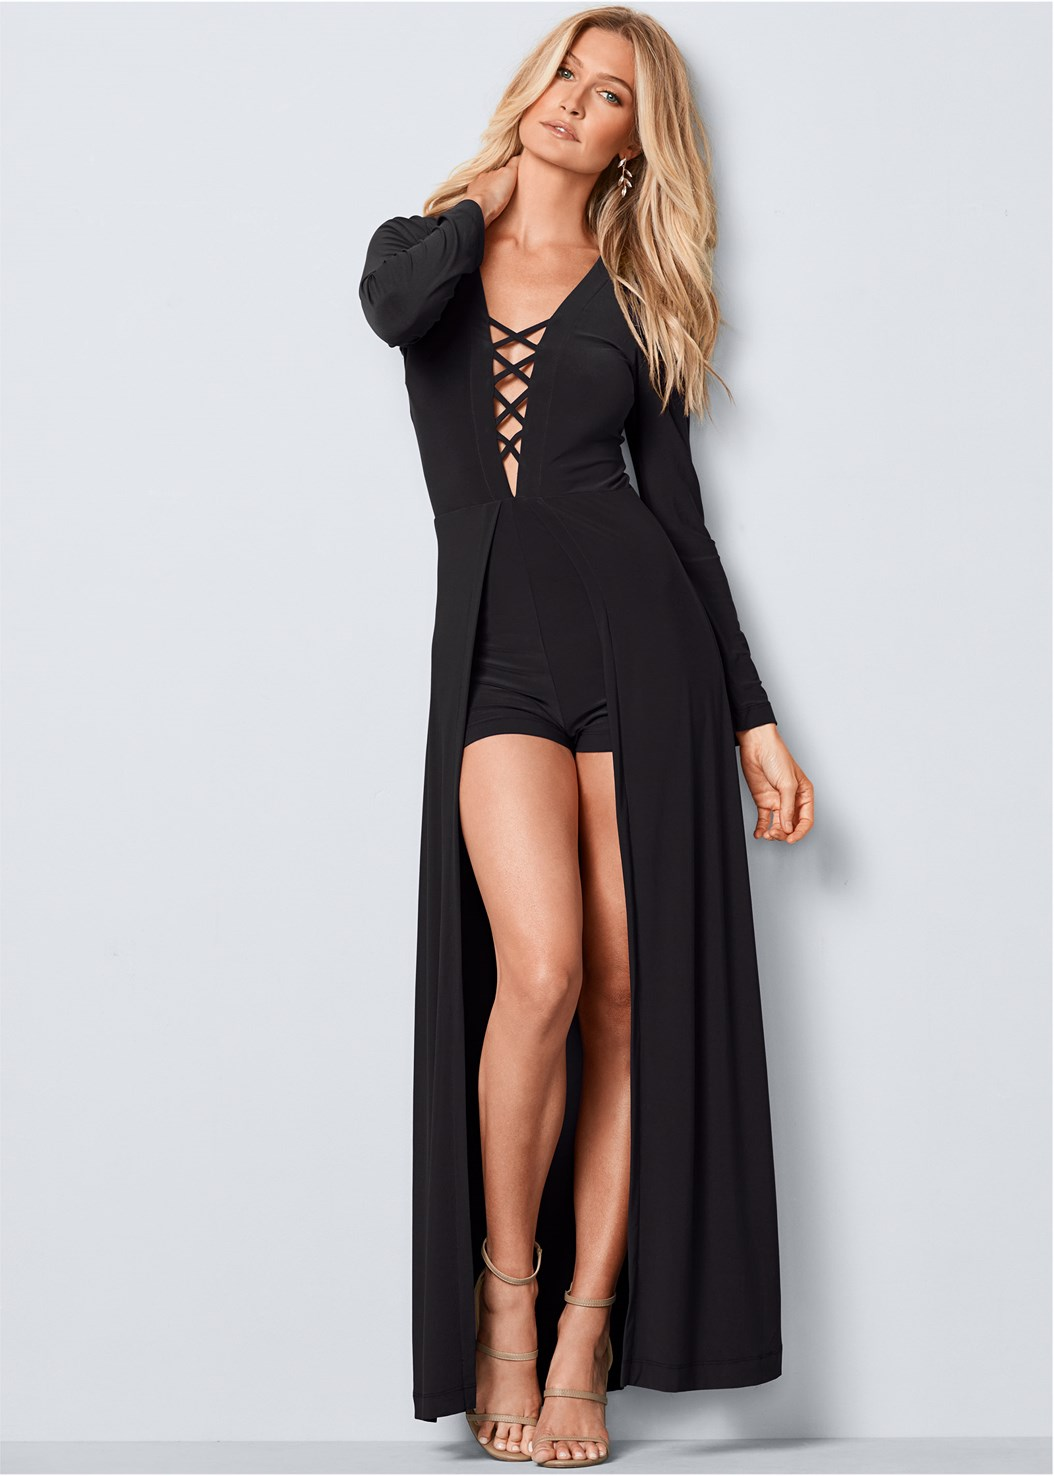 Lace Up Romper,Jewel Fringe Earrings,High Heel Strappy Sandals